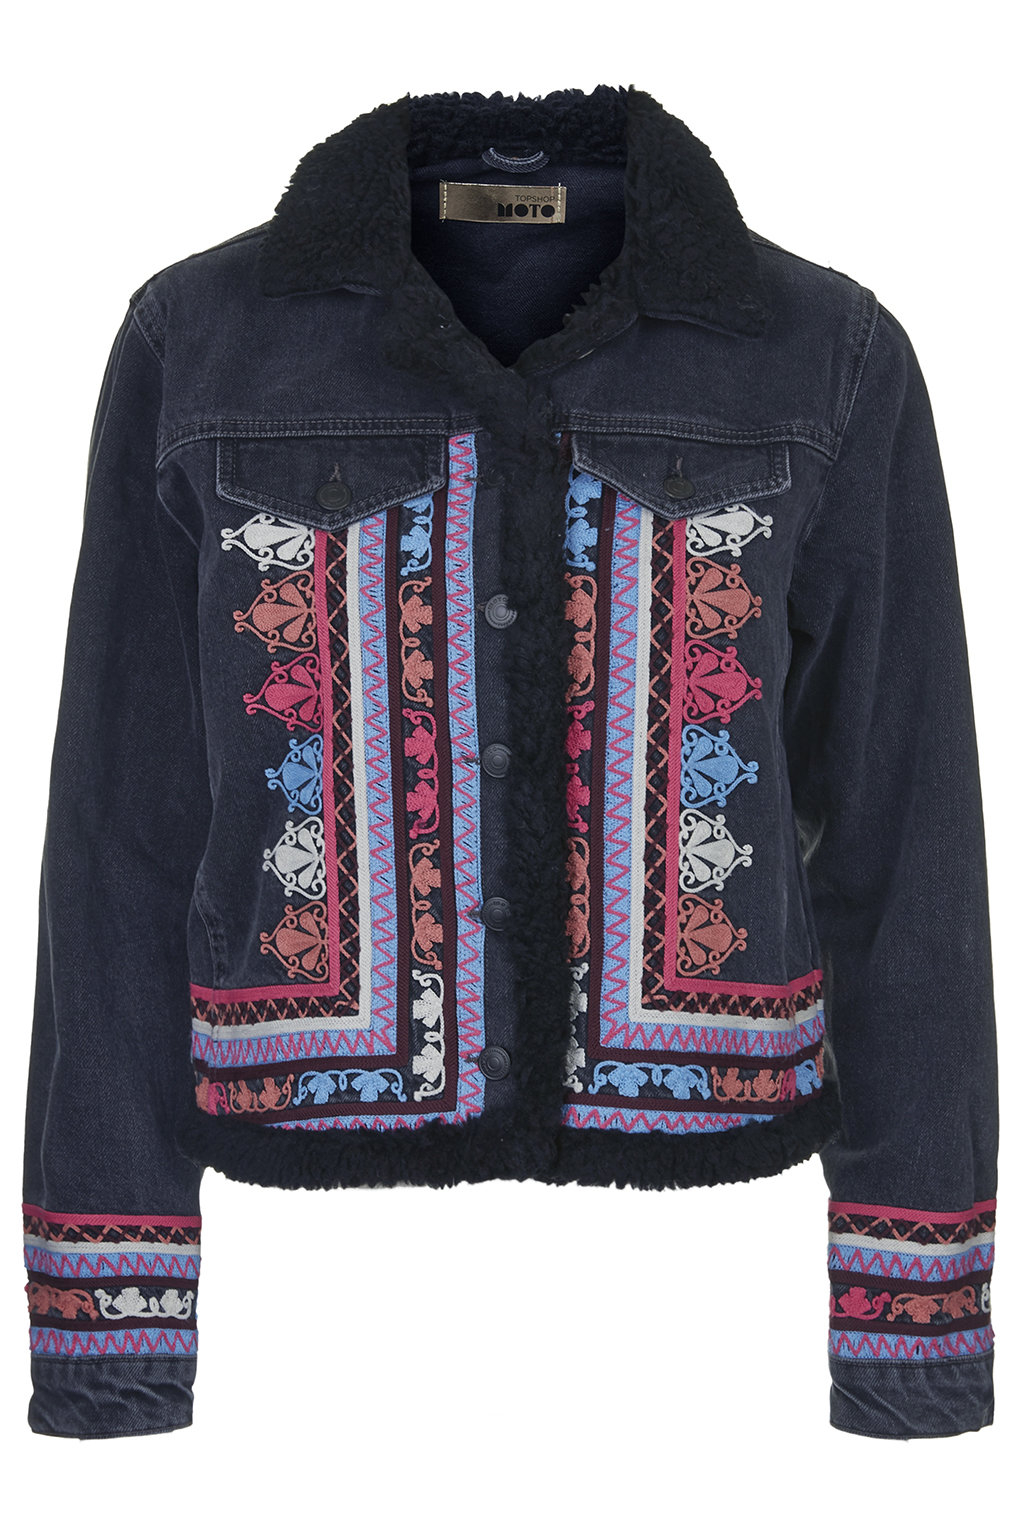 Topshop moto denim embroidered jacket in black lyst for Womens denim shirts topshop